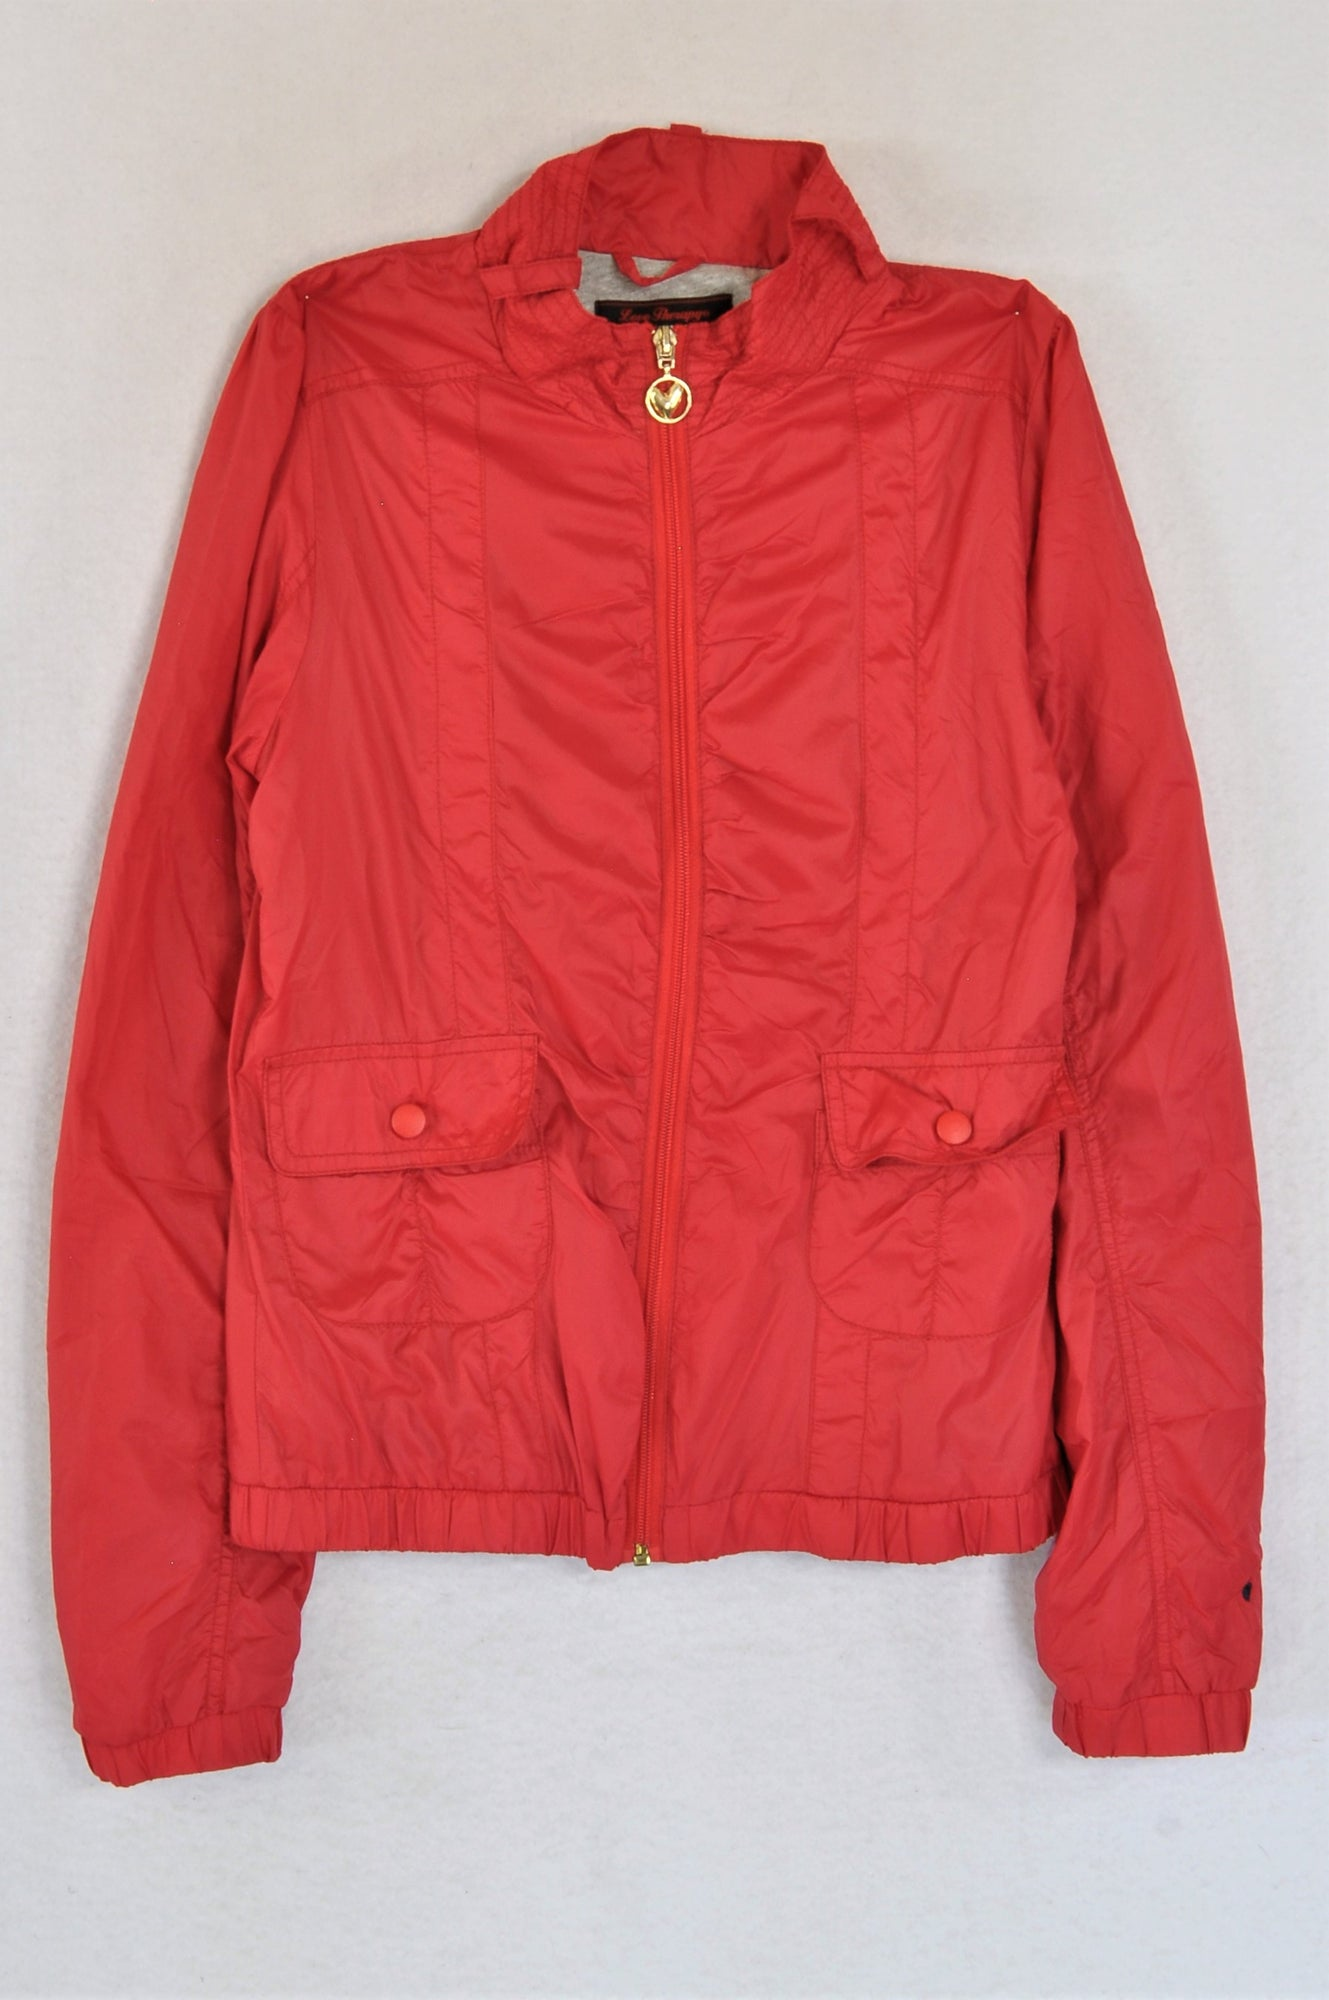 Love Therapy Red Collared Lightweight Jacket Women Size S